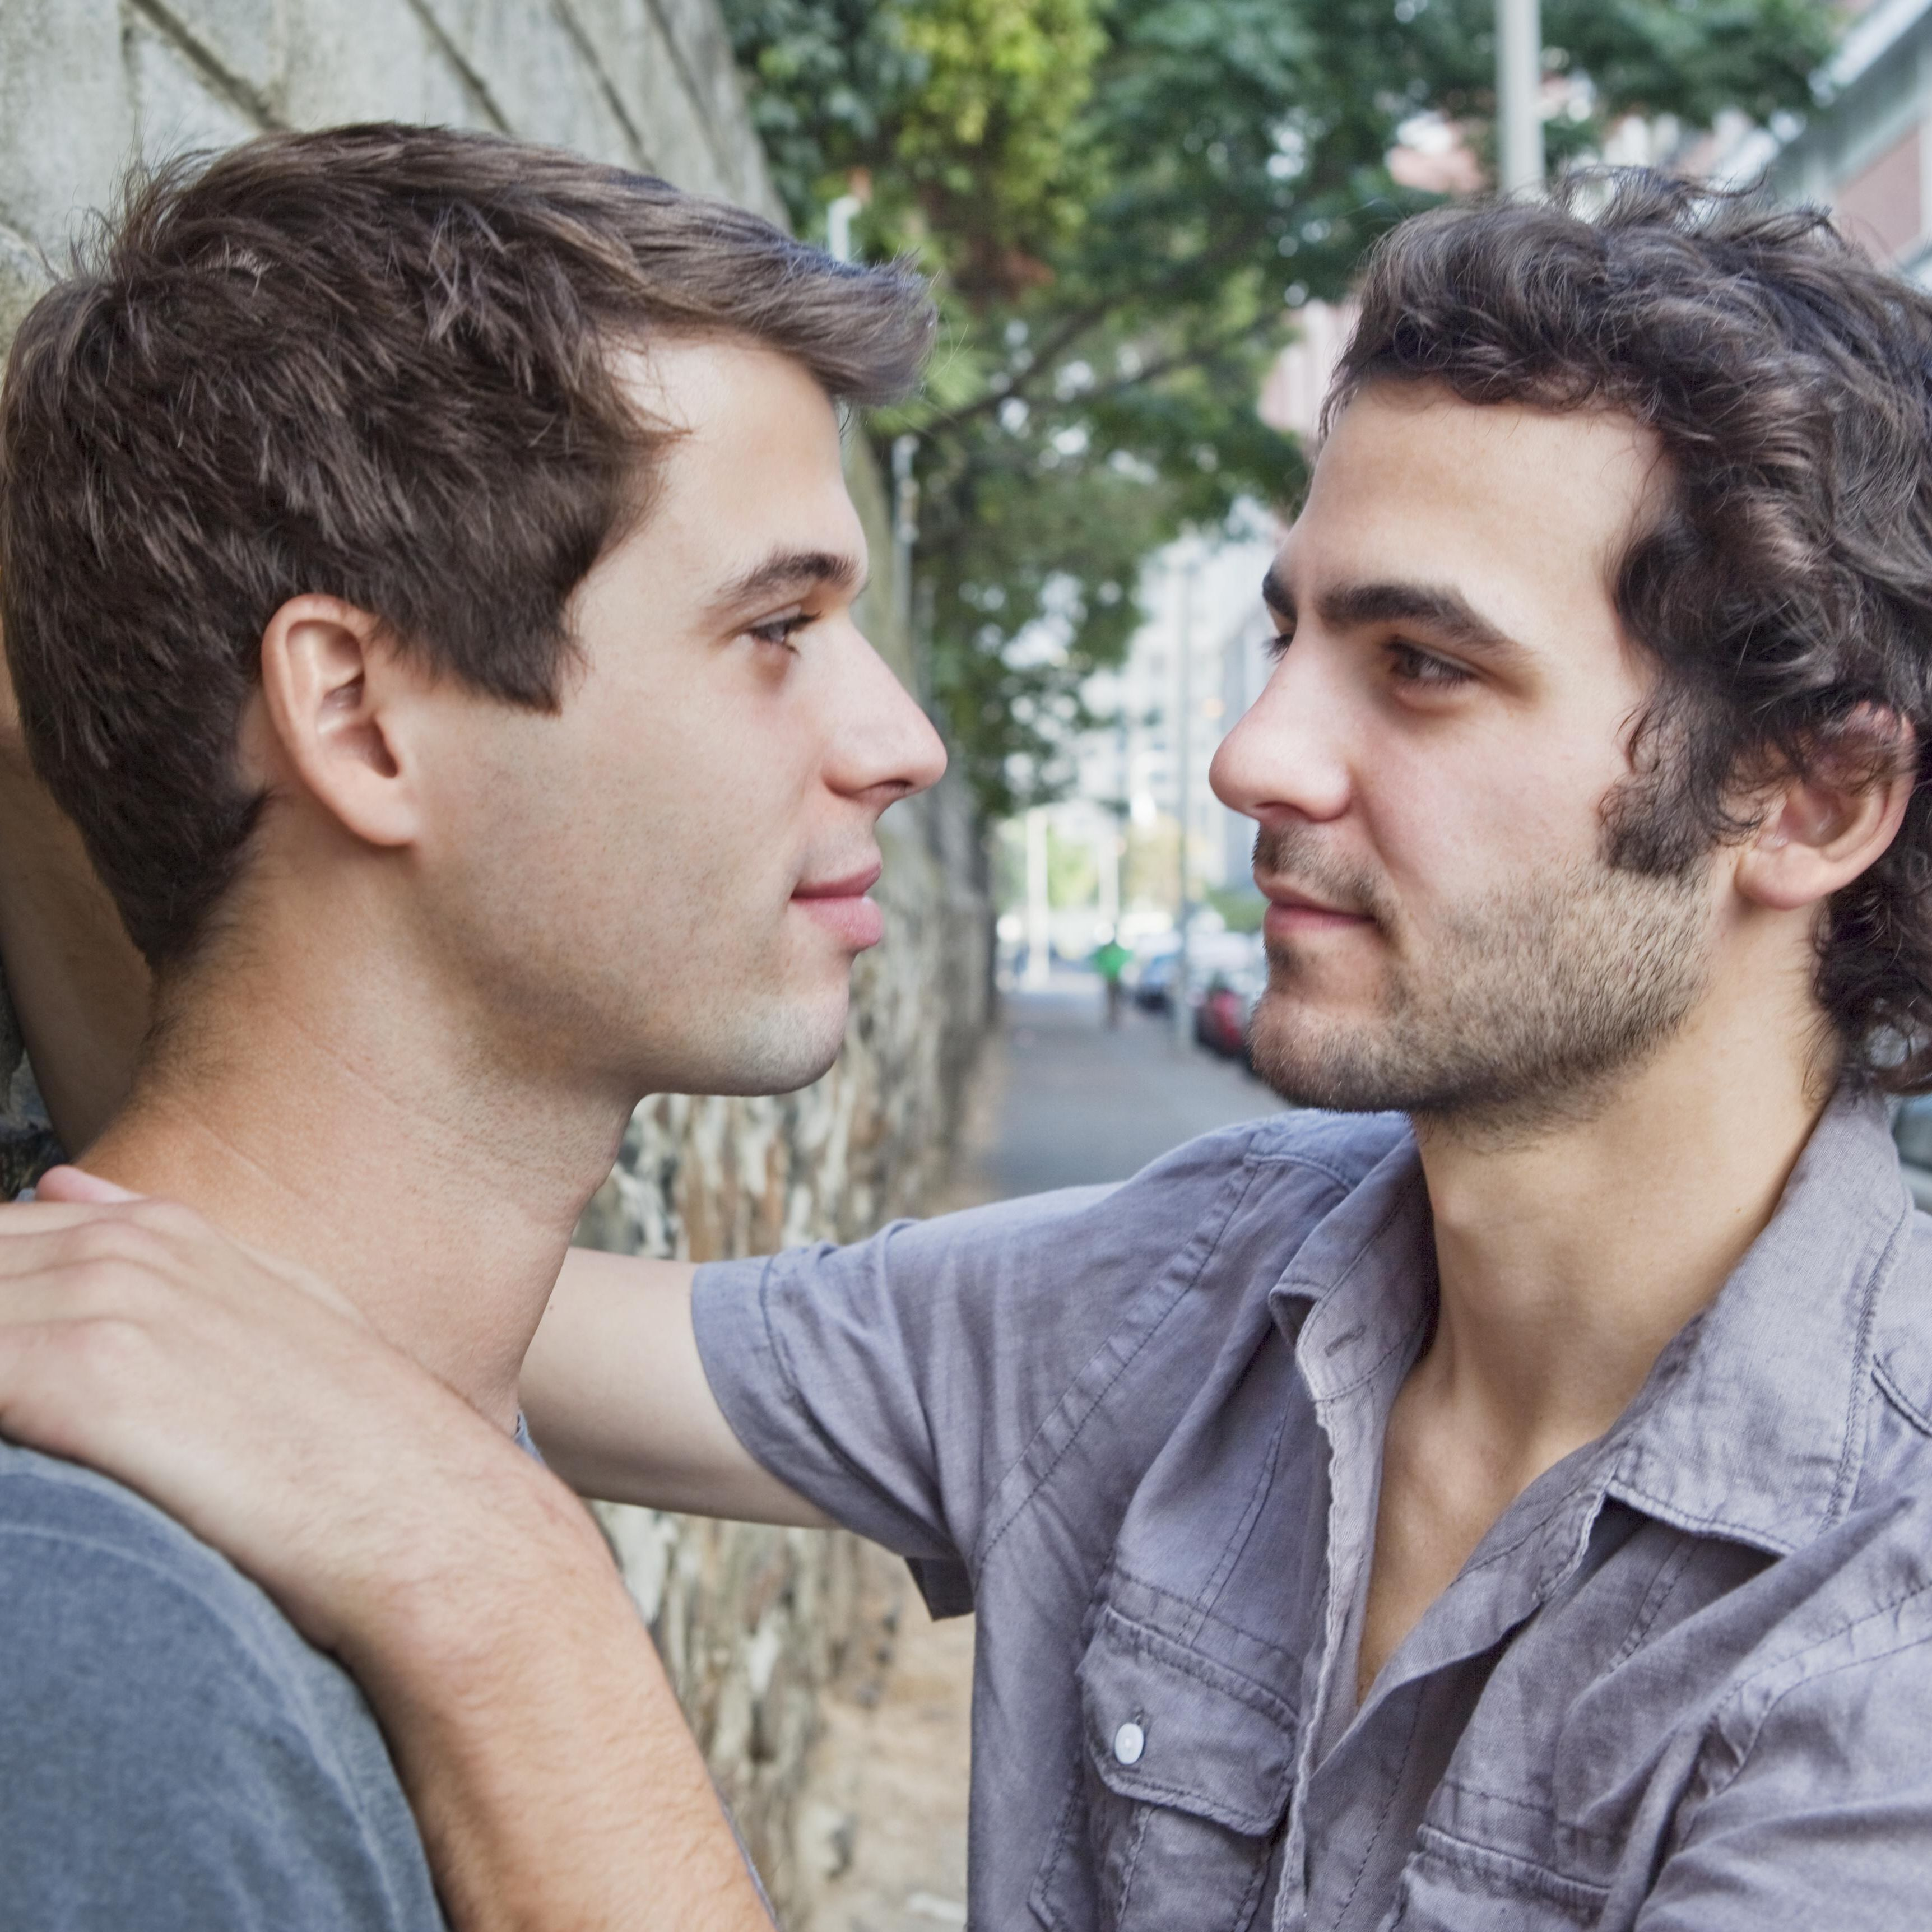 Learn How to Flirt With Gay Men